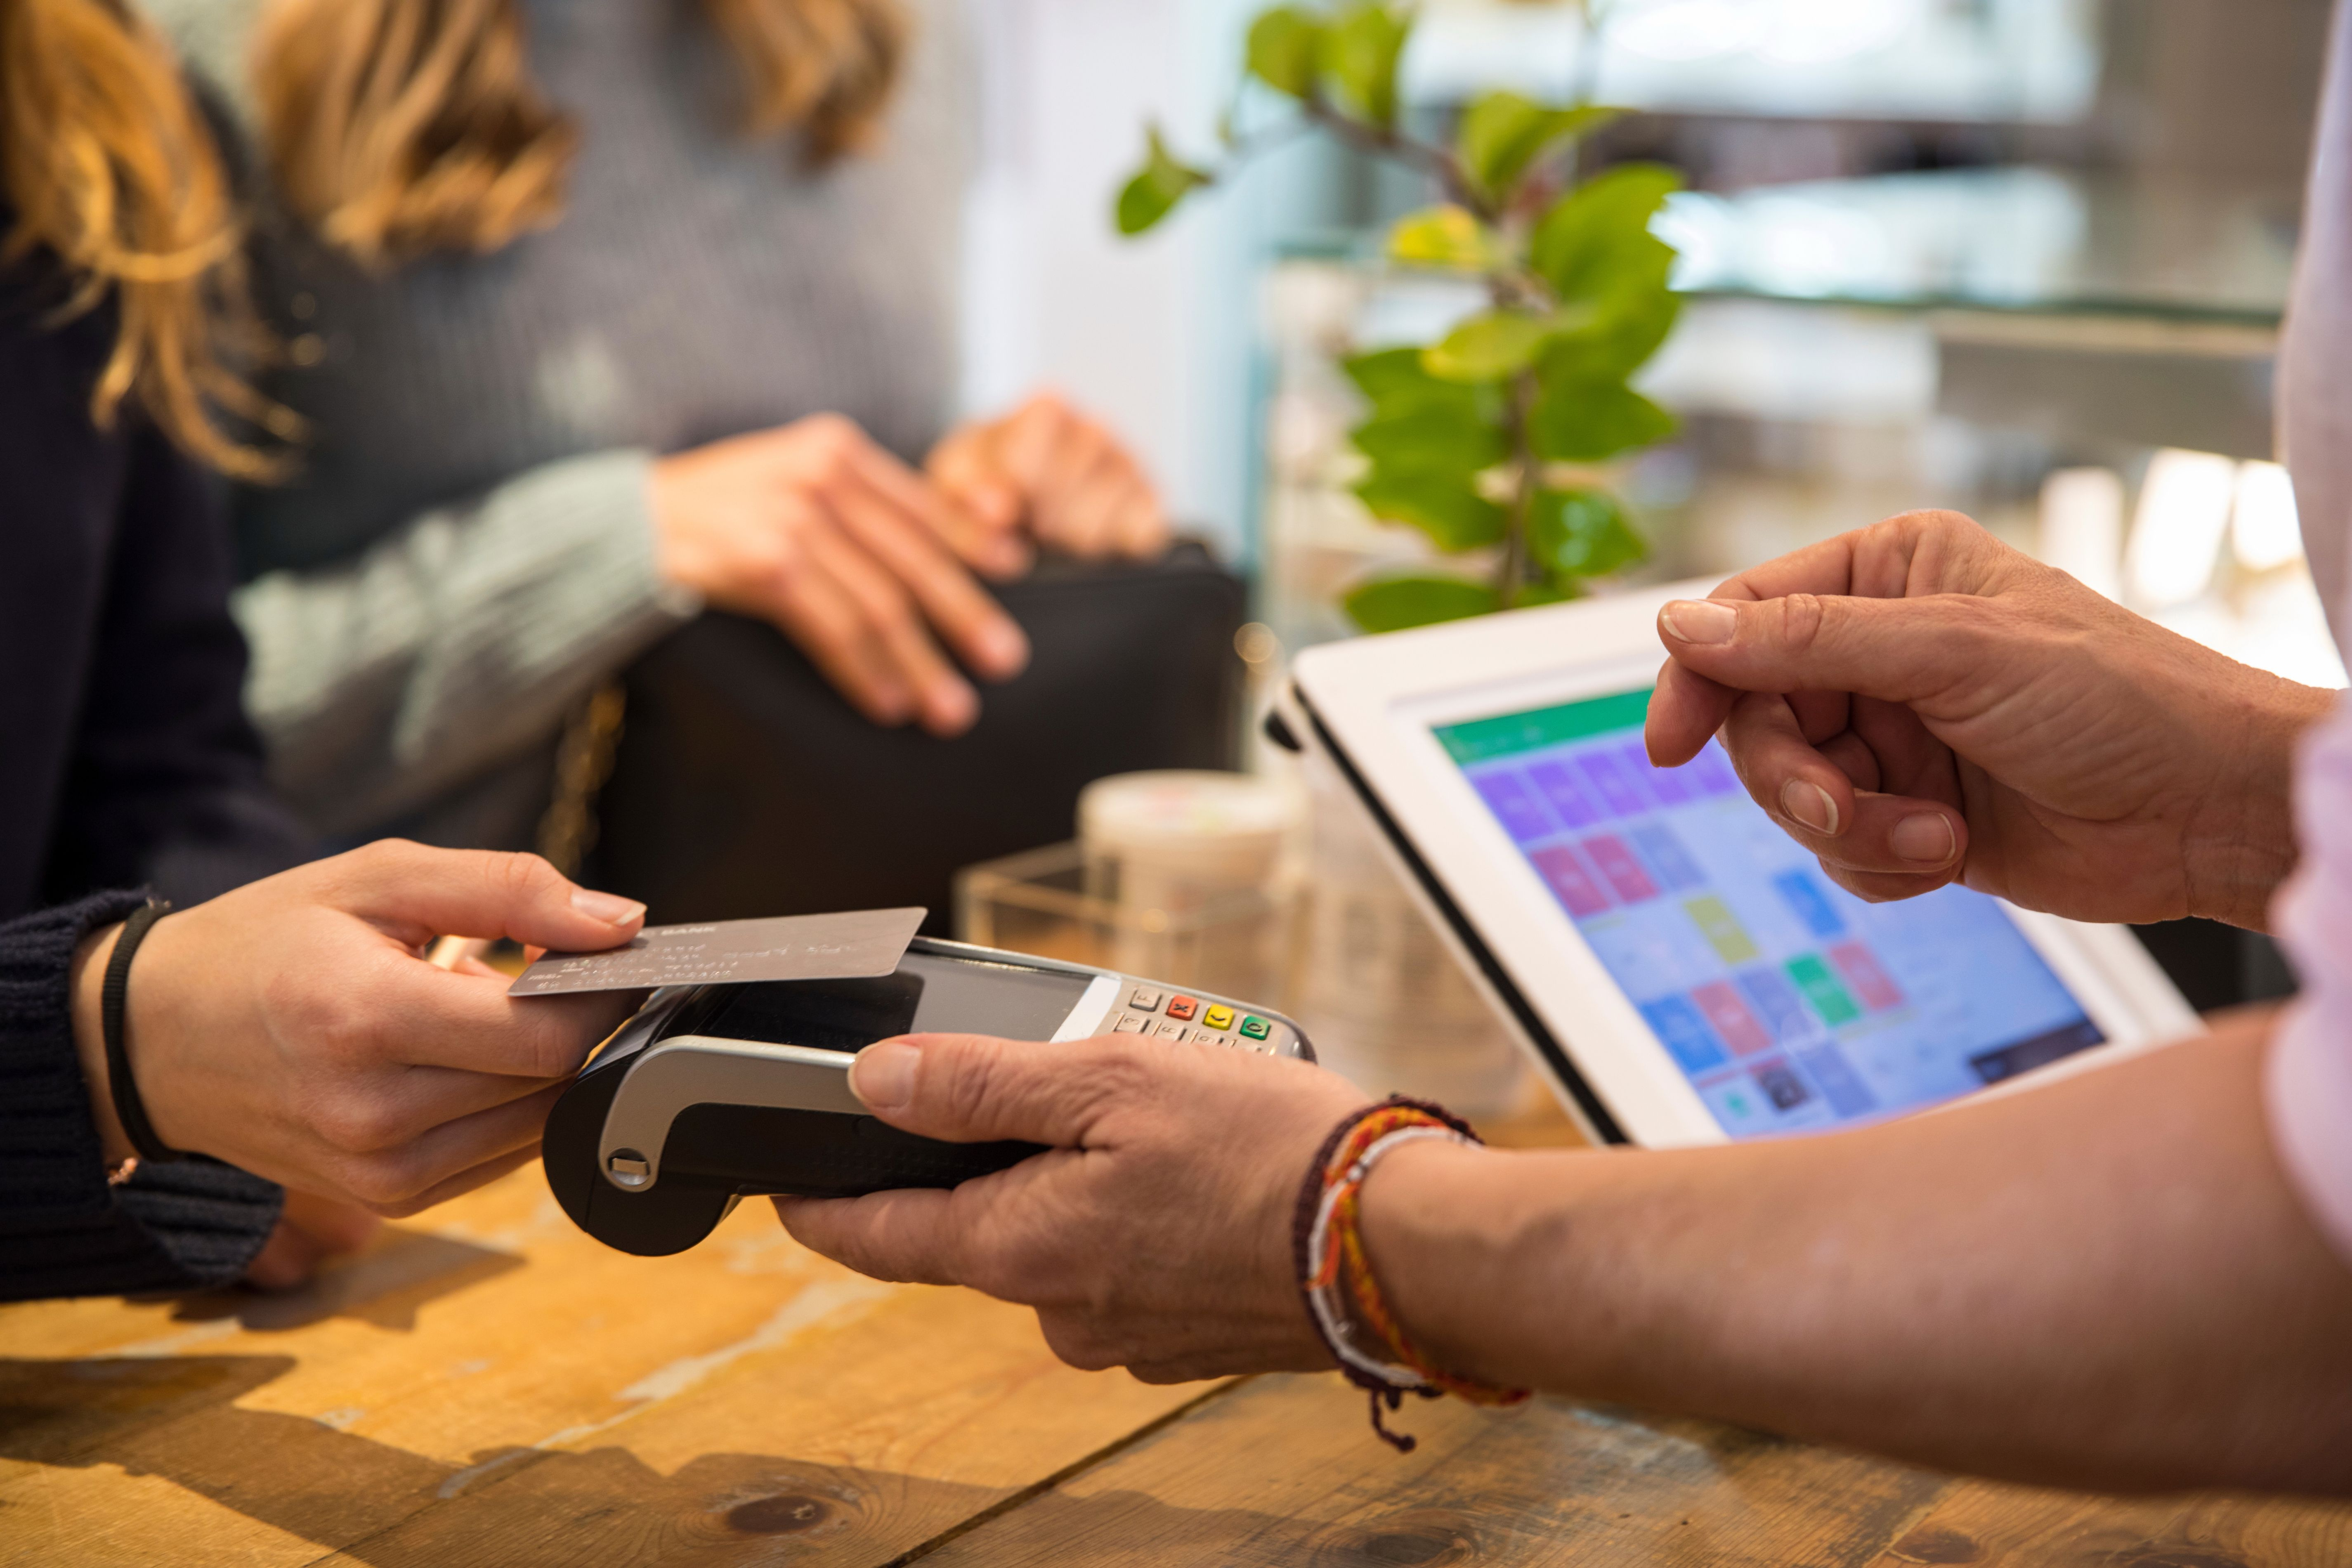 Minimum usage fee is £35Mandatory Credit: Photo by Cultura/REX/Shutterstock (9706678a)MODEL RELEASED, Female customer in shop, paying for goods using credit card on contactless payment machine, mid section, close-upVARIOUS